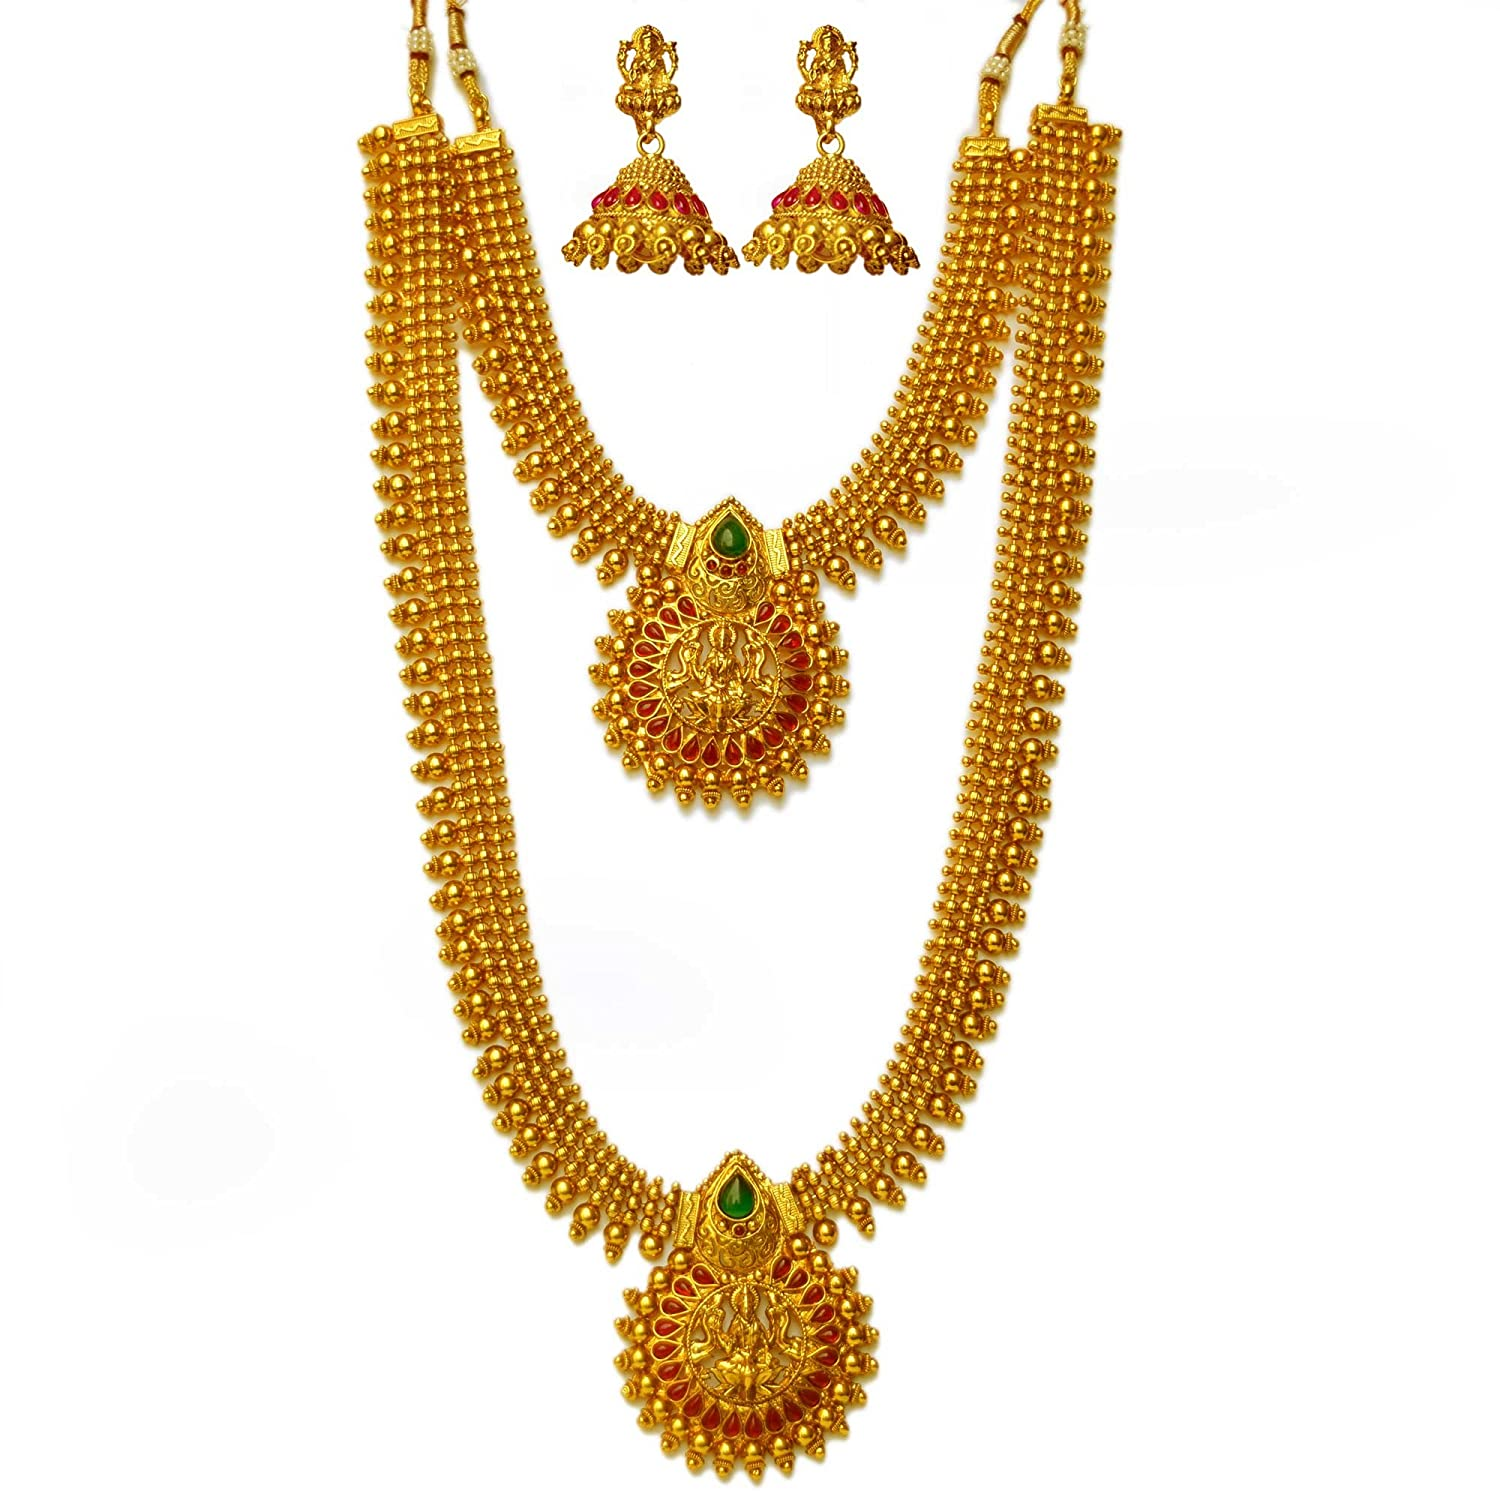 gold plated designs south jewellery small women collections designer gorgeous online original necklace set indian buy shopping